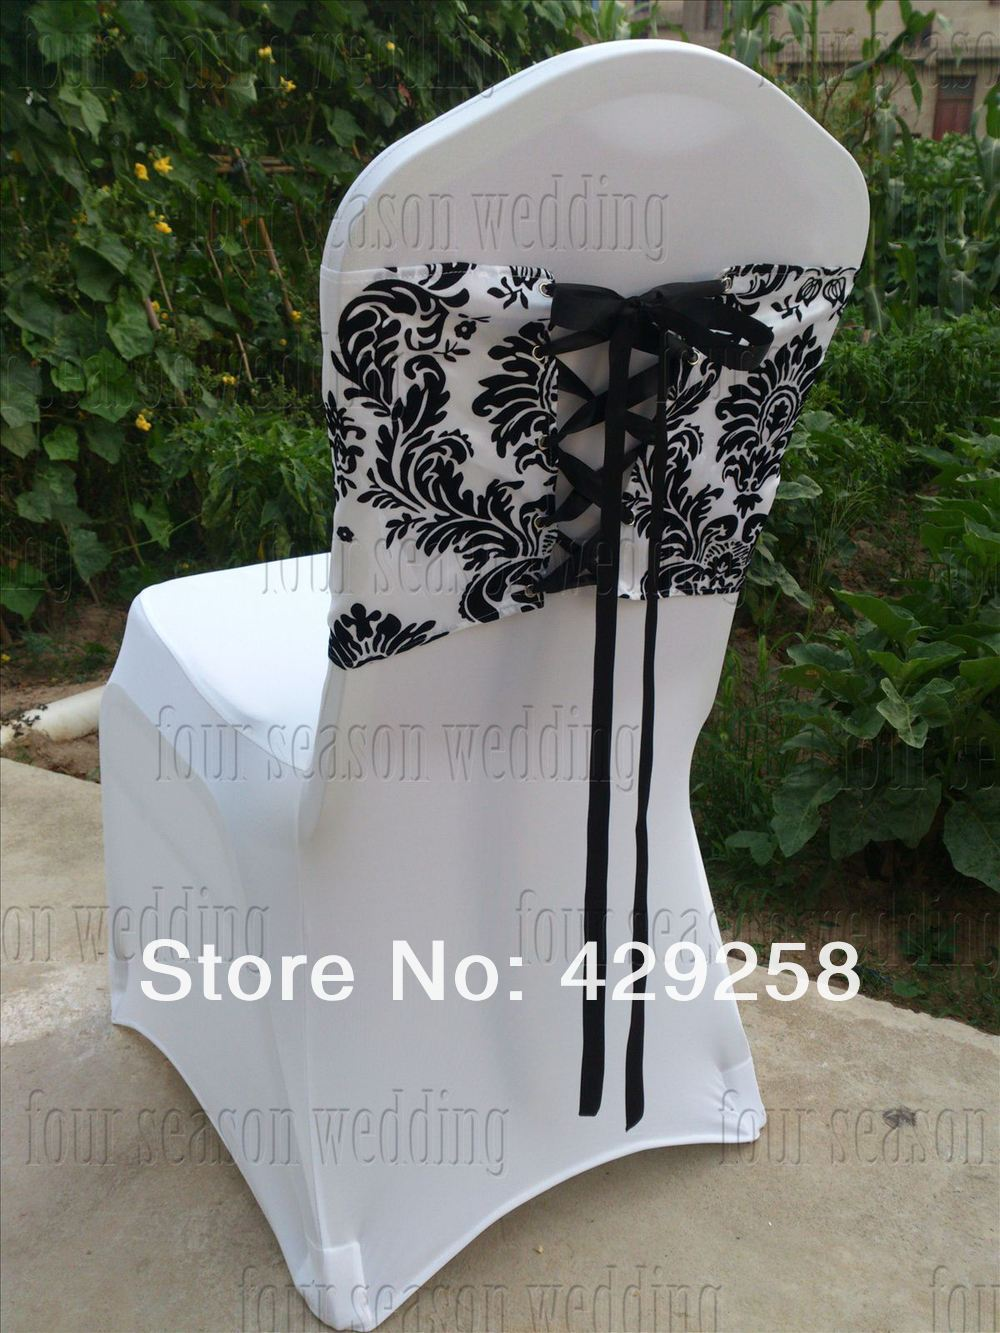 Sensational Us 180 0 Free Shipping 100Pcs White And Black Flocking Taffeta Chair Cover Sash Also Call Elegance Damask Corset Chair Sash In Sashes From Home Download Free Architecture Designs Rallybritishbridgeorg